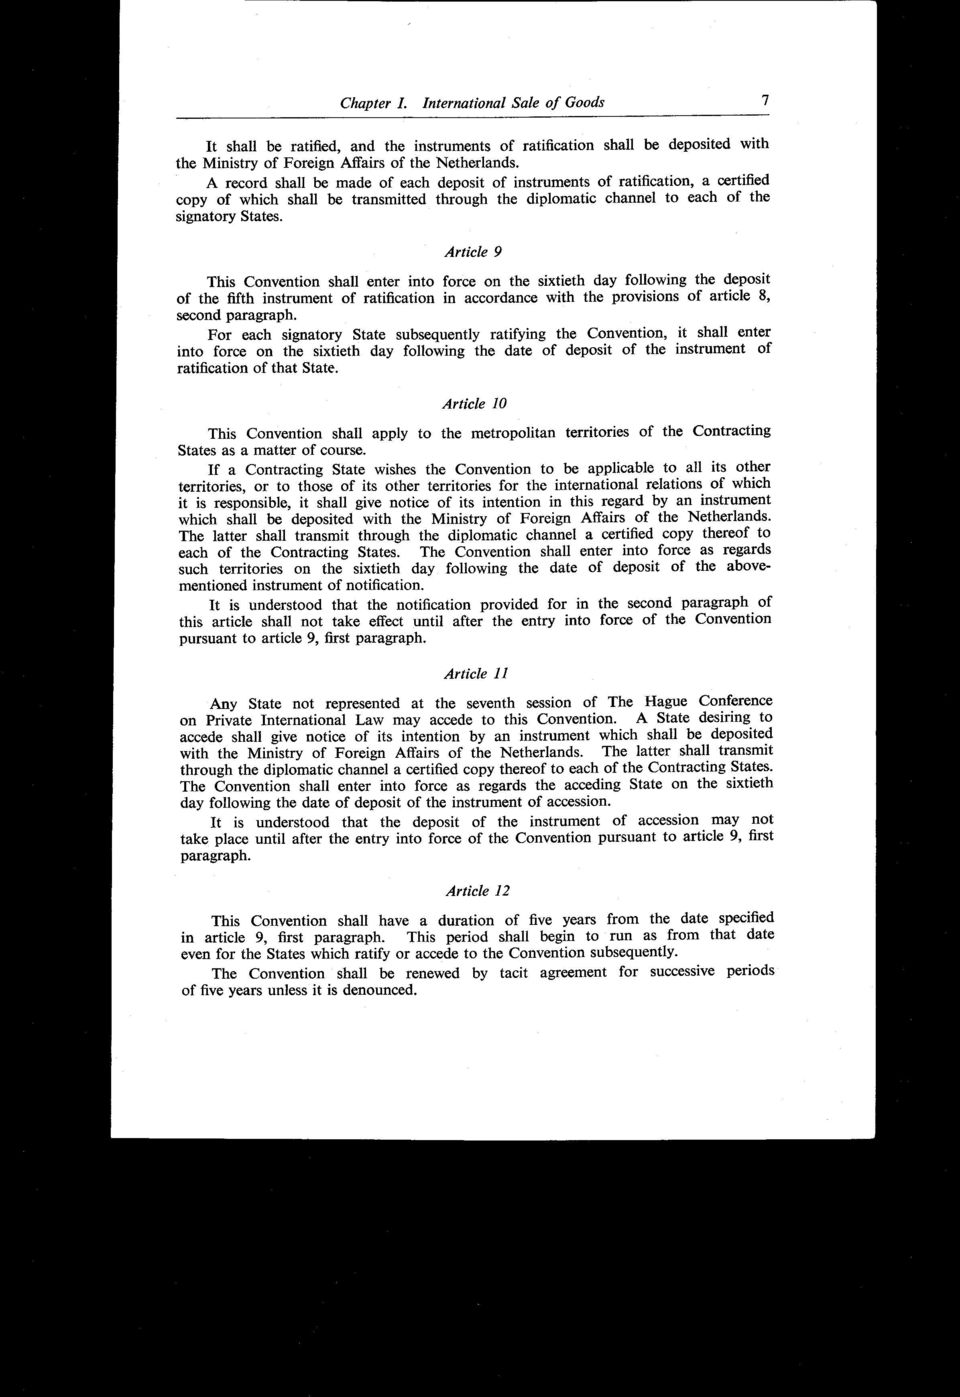 Article 9 This Convention shall enter into force on the sixtieth day following the deposit of the fifth instrument of ratification in accordance with the provisions of article 8, second paragraph.